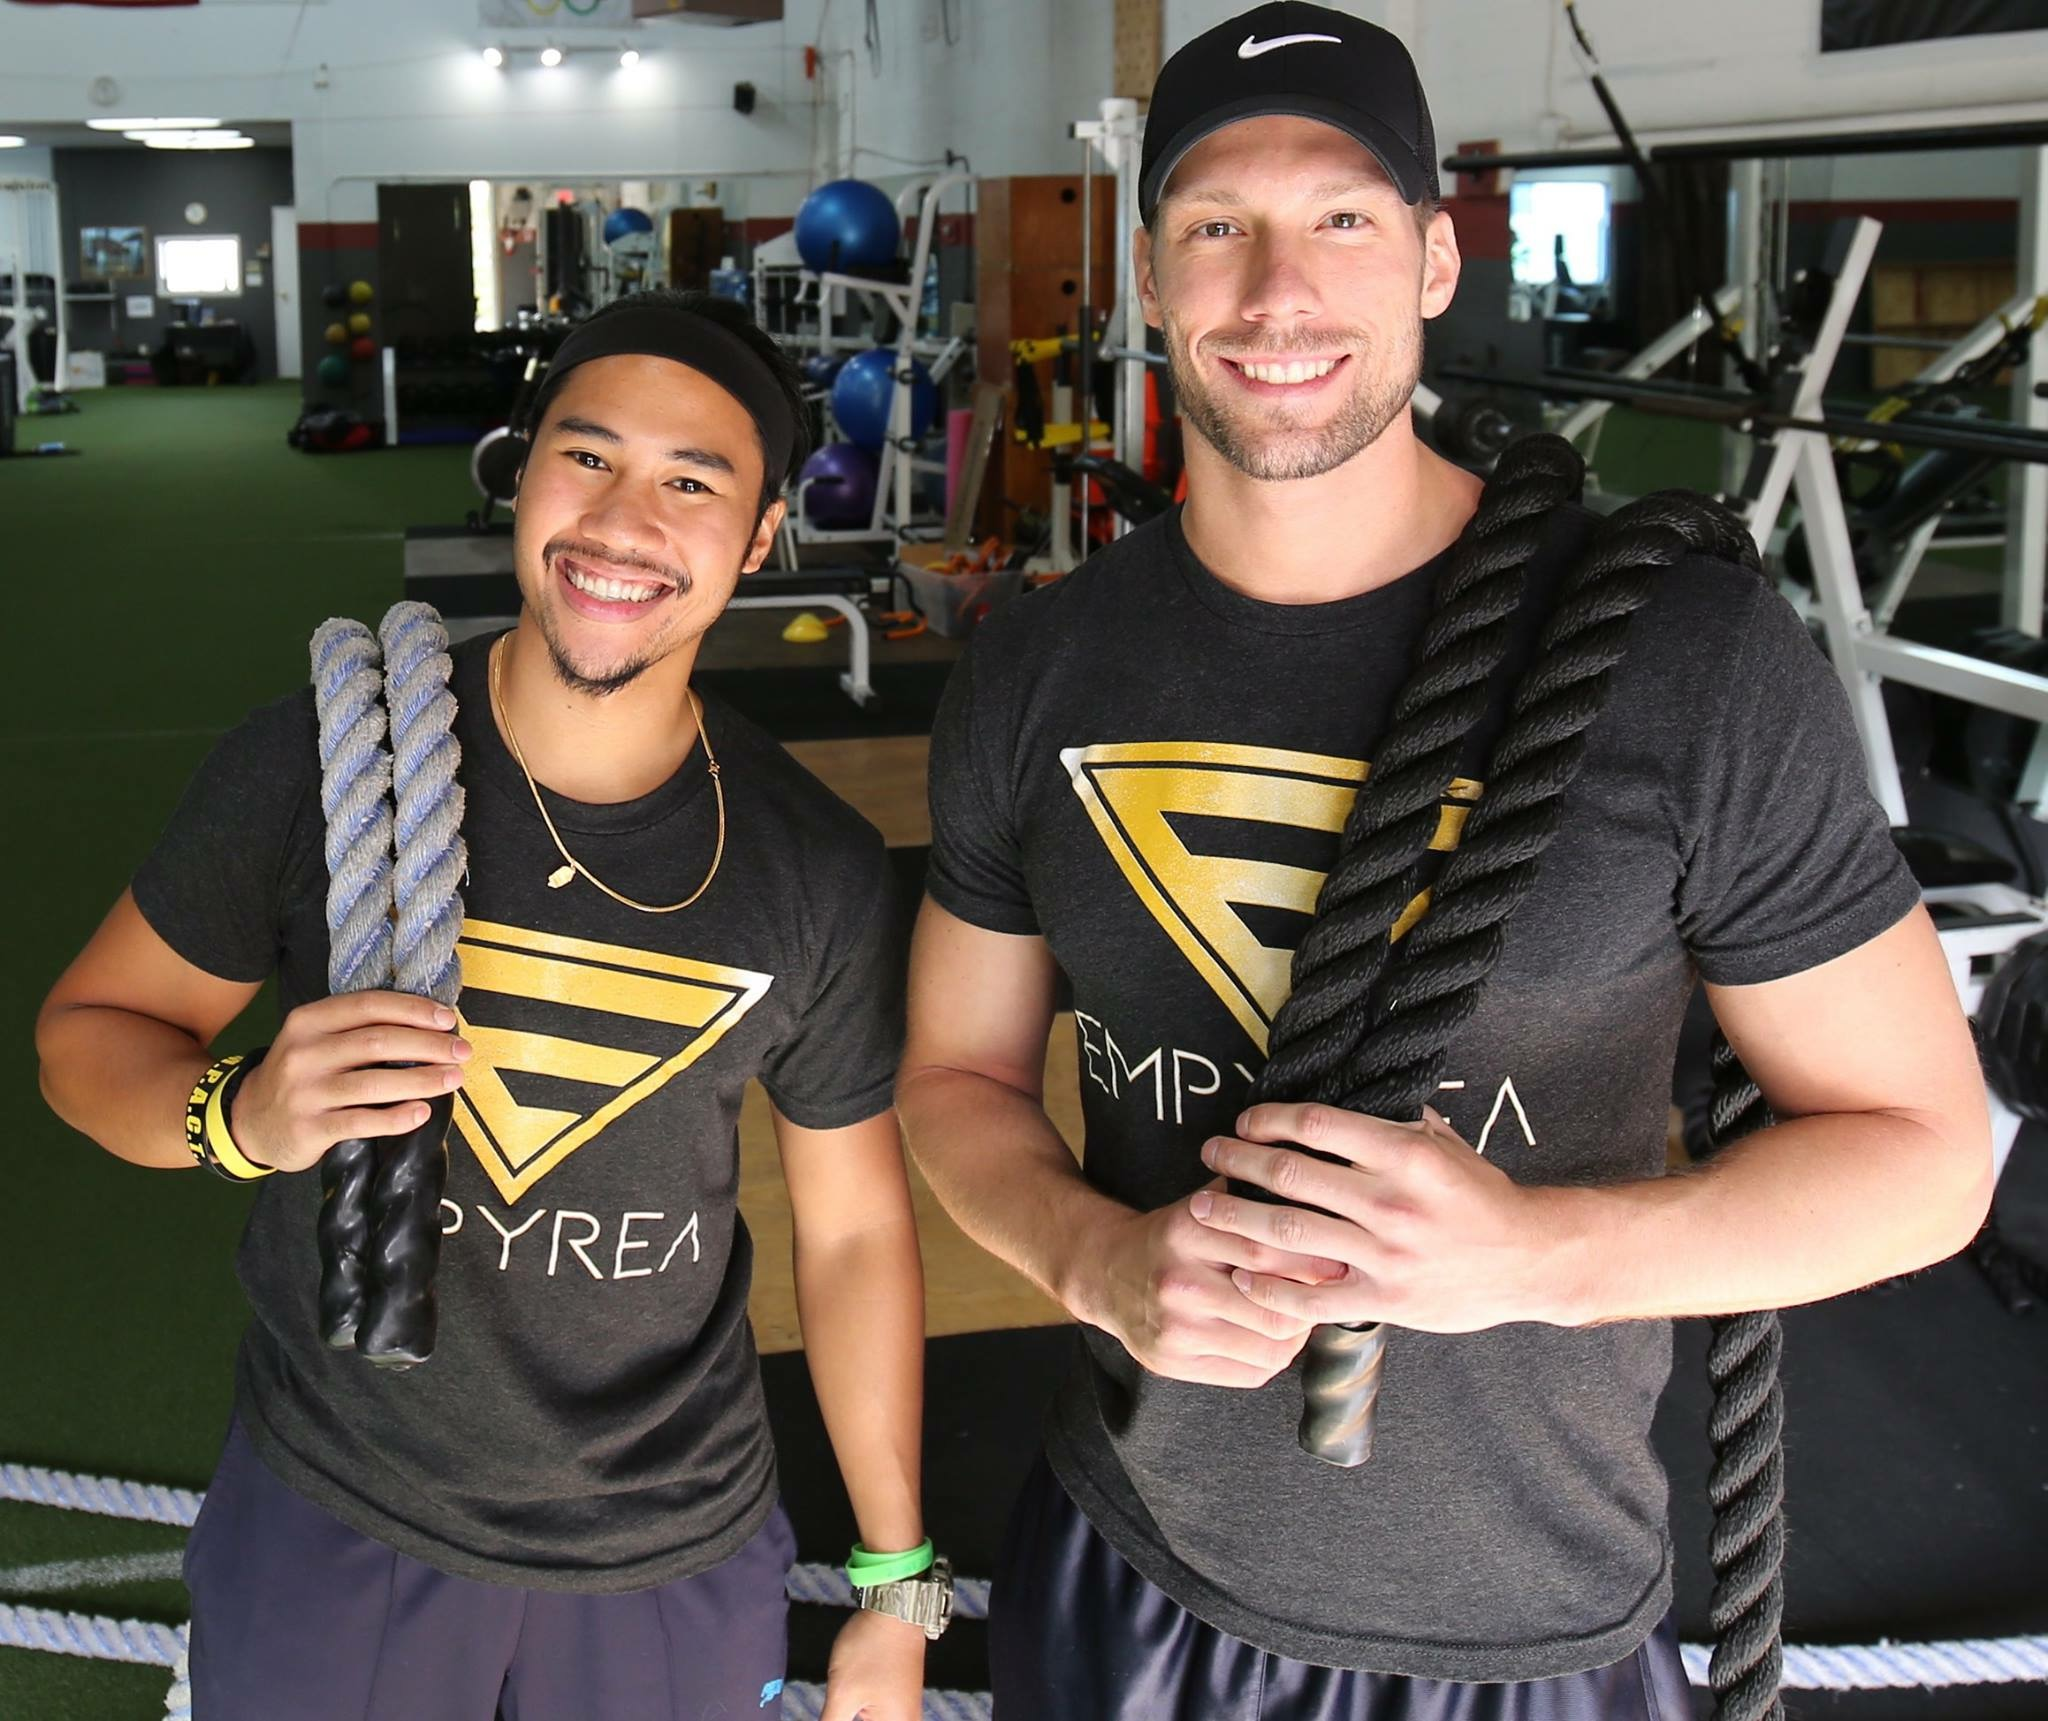 Co-Owners of Empyrea Group Training : (Left)  Carl Anthony Grande,  B.S., NASM CPT, PES and  (Right)  Justin Marrone,  B.A., NASM CPT, Precision Nutrition Level 1 Coach